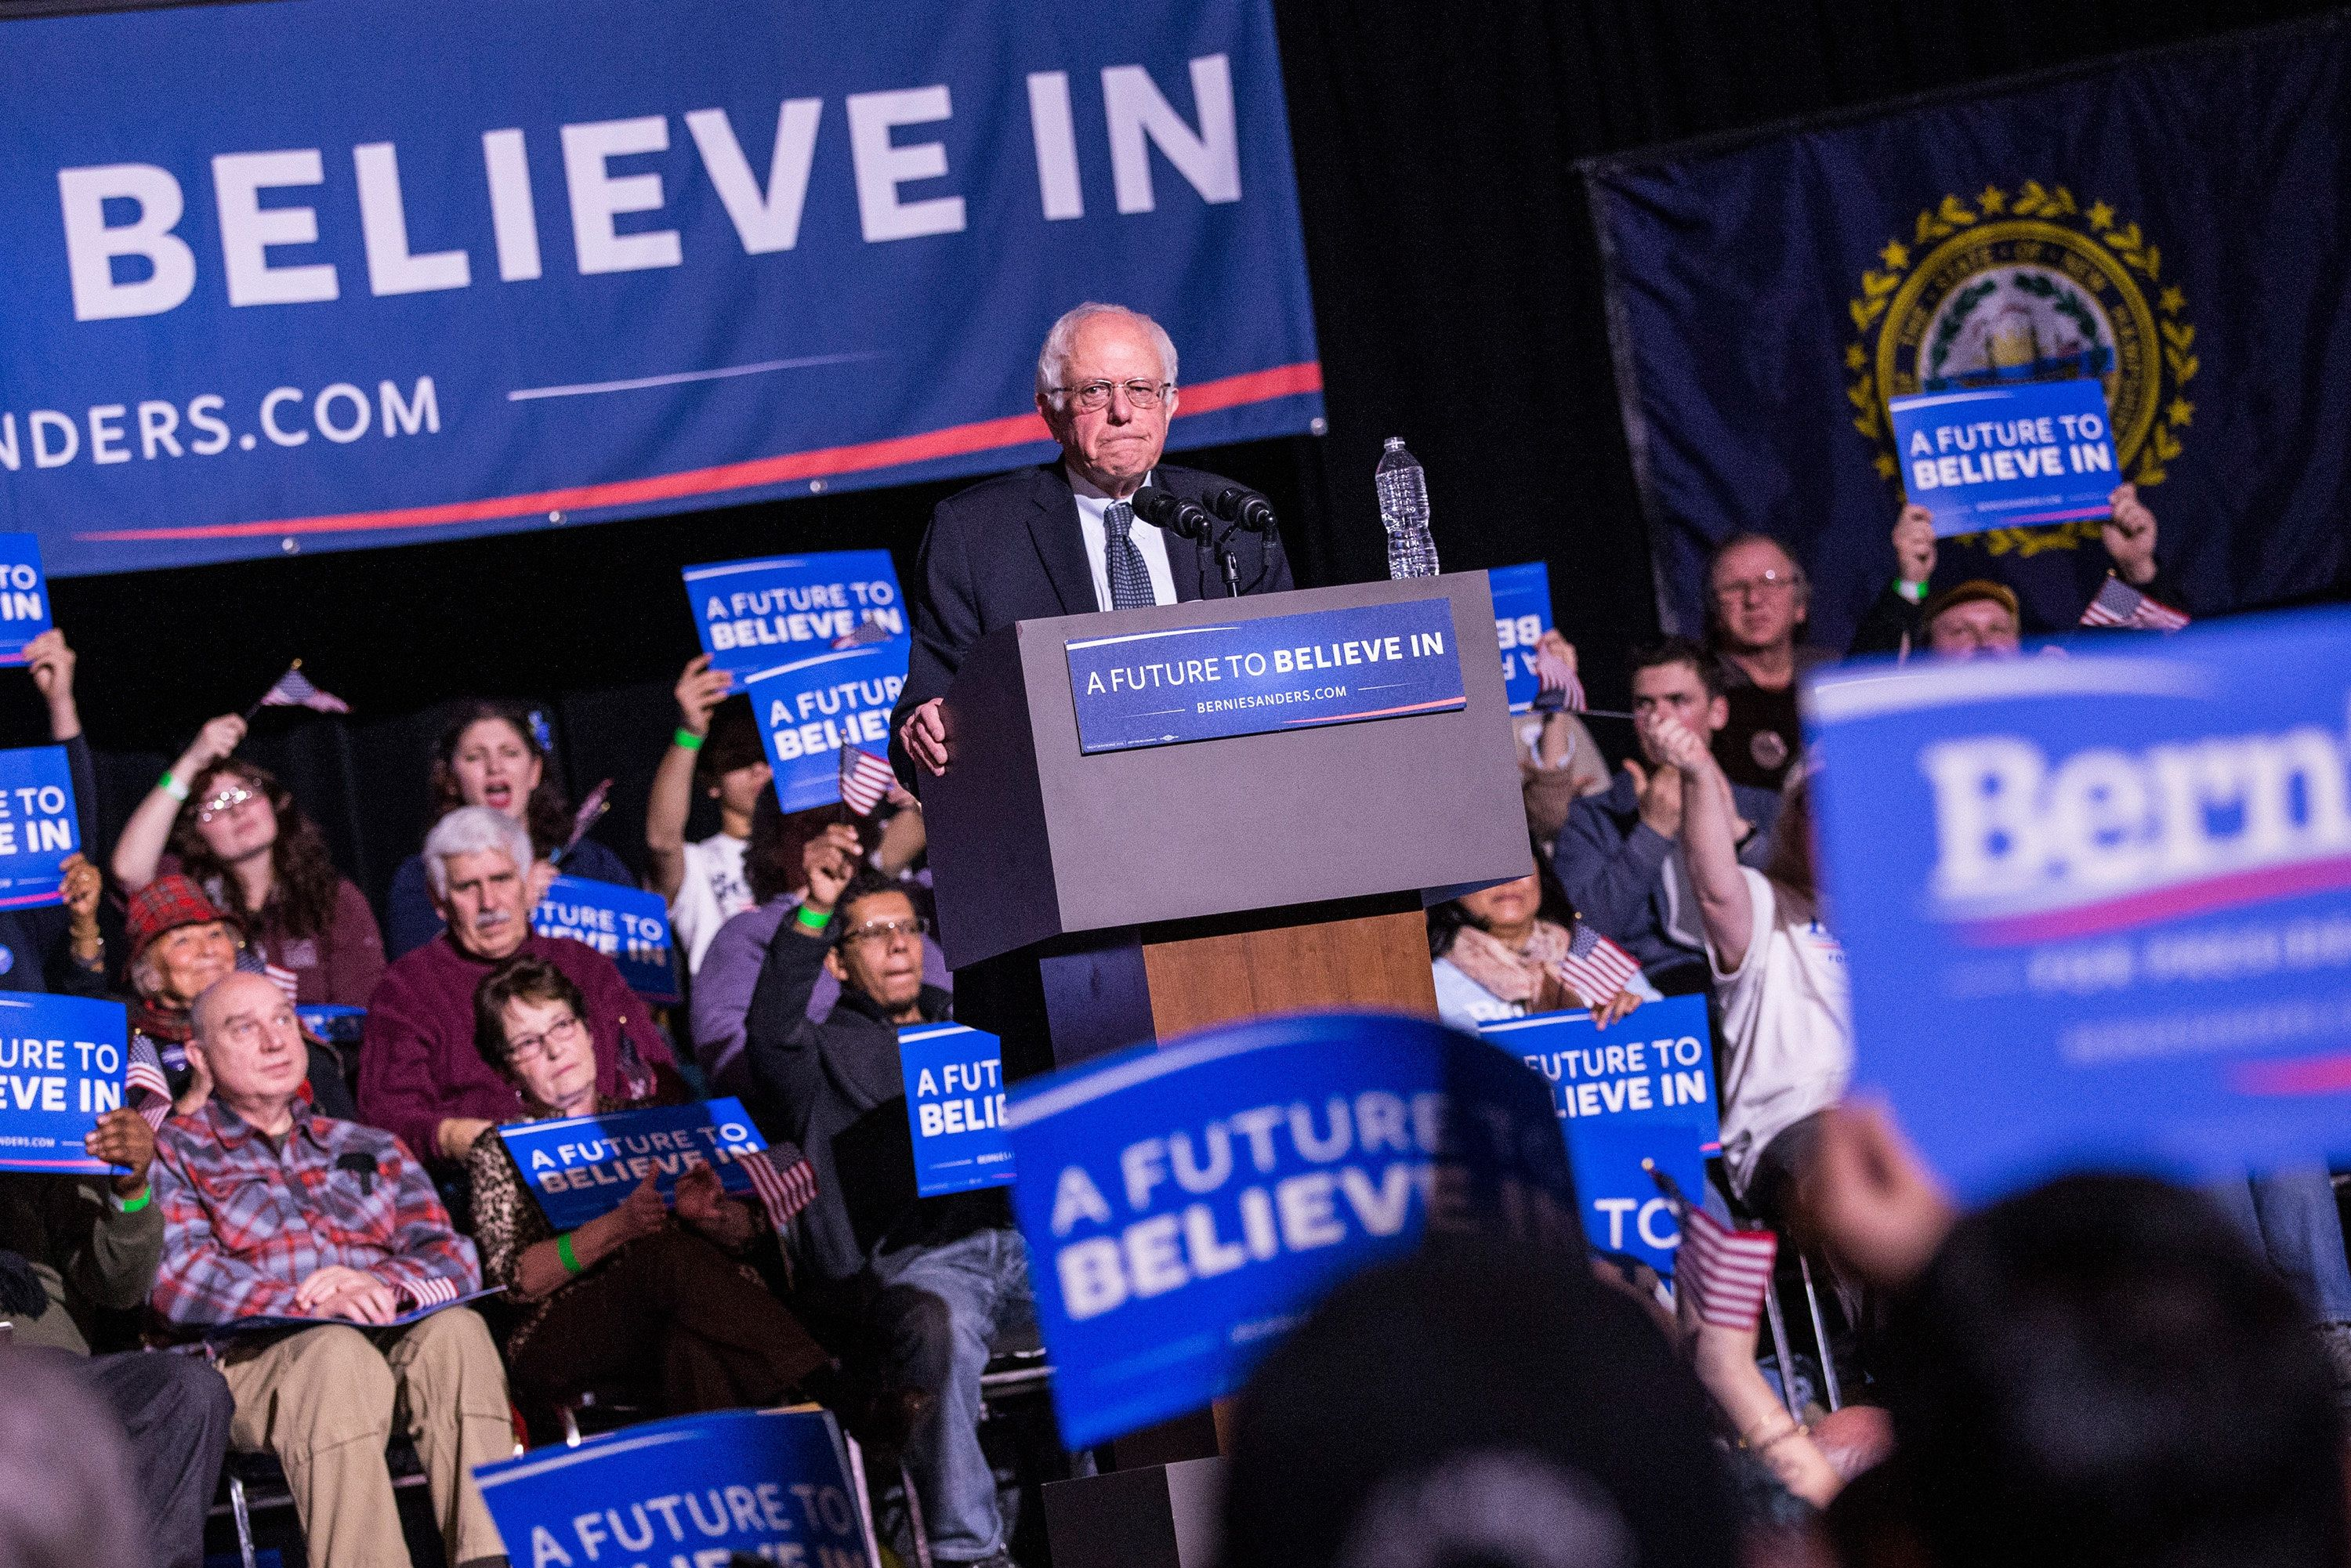 KEENE, NH - FEBRUARY 02:  Democratic Presidential candidate Sen. Bernie Sanders (I-VT) speaks at a 'Get Out the Vote' rally at the Colonial Theater on February 2, 2016 in Keene, New Hampshire. Sanders is in New Hampshire campaigning ahead of the state's primary on February 9.  (Photo by Andrew Burton/Getty Images)